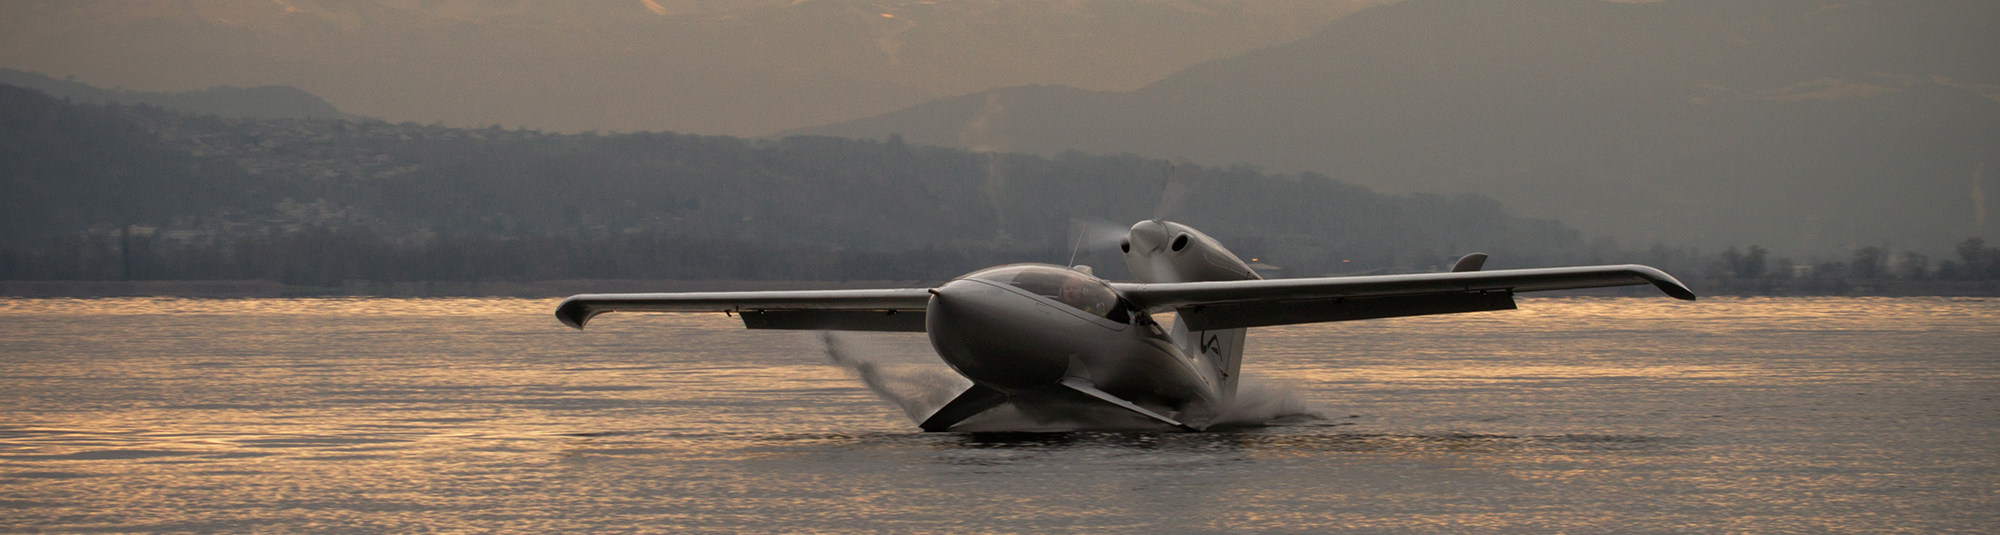 Light amphibious aircraft taking off from wtaer